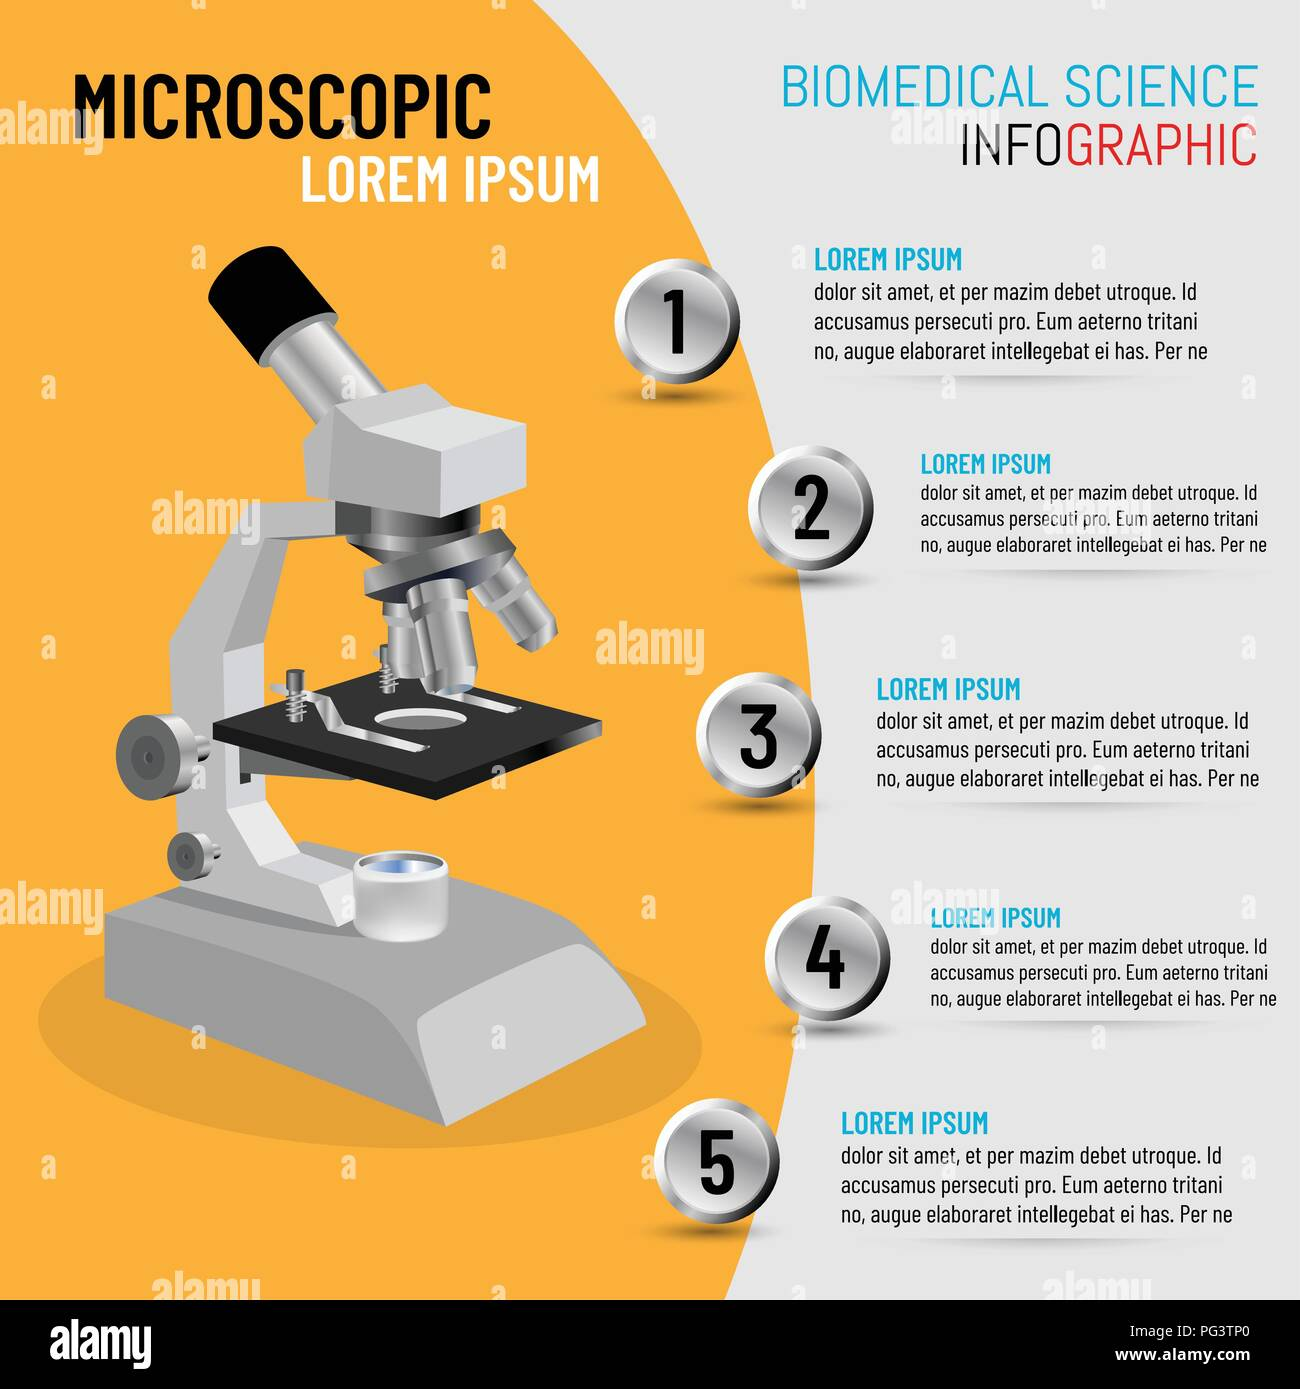 The concept of biomedical science with 5 step processes of microscope inspection methods, Vector illustration - Stock Vector